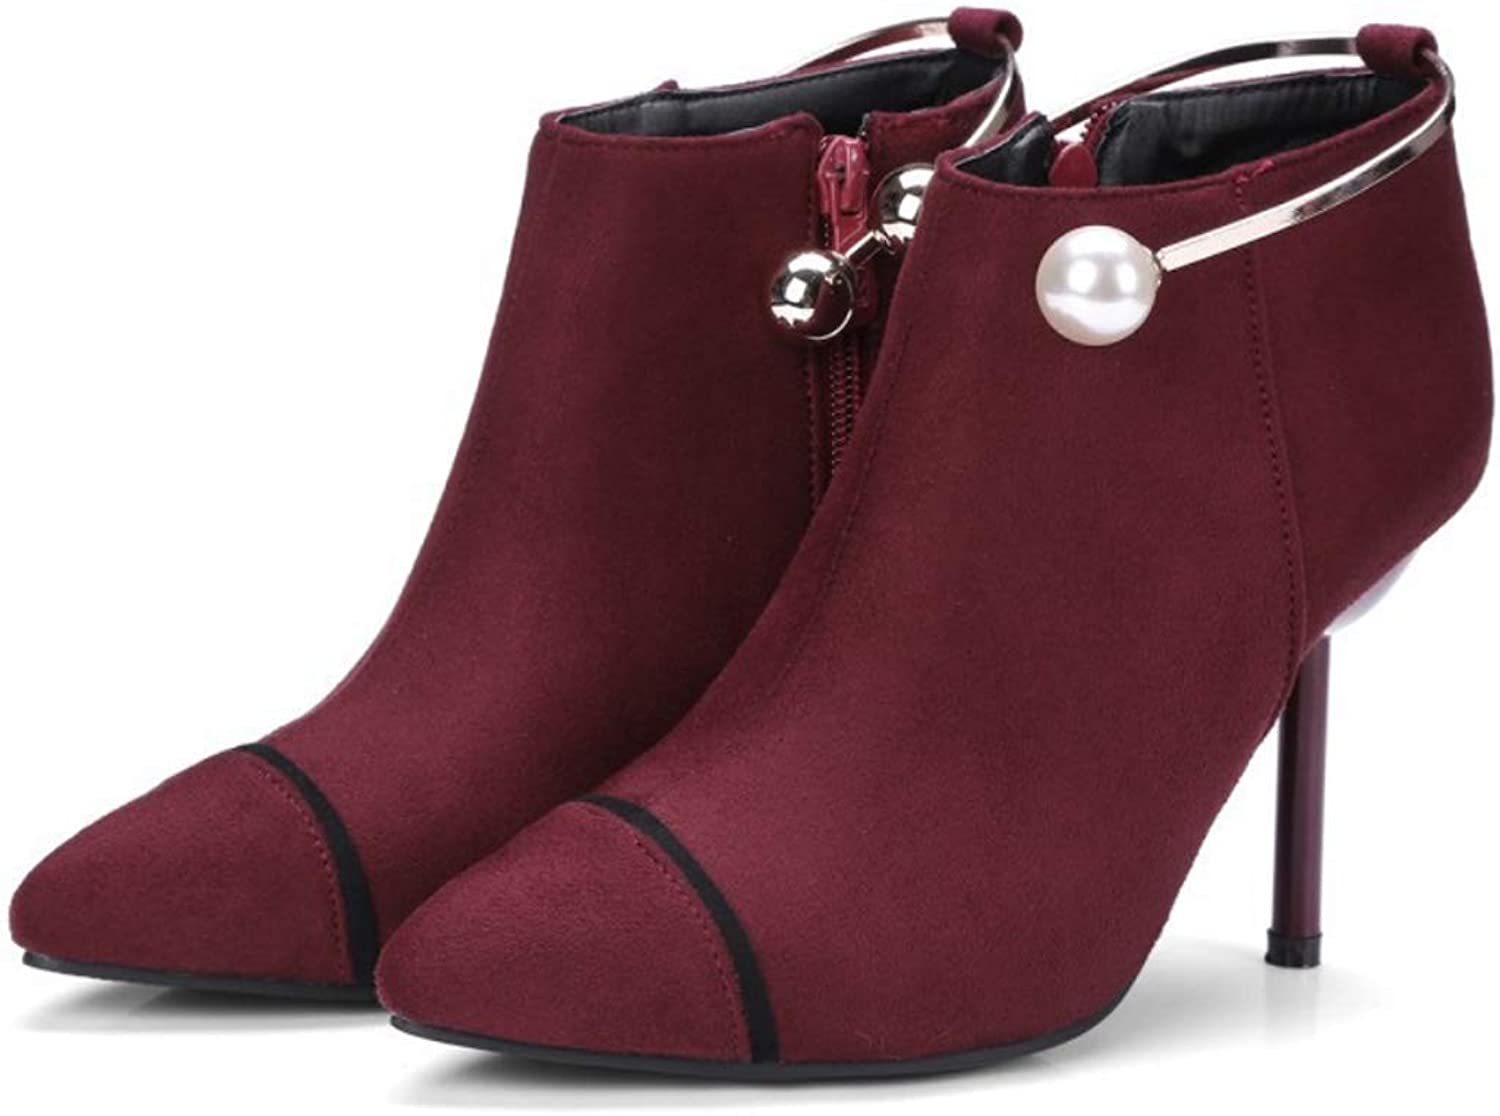 Women's shoes Ankle Boots Fall & Winter Comfort Fashion Stiletto Heel Booties